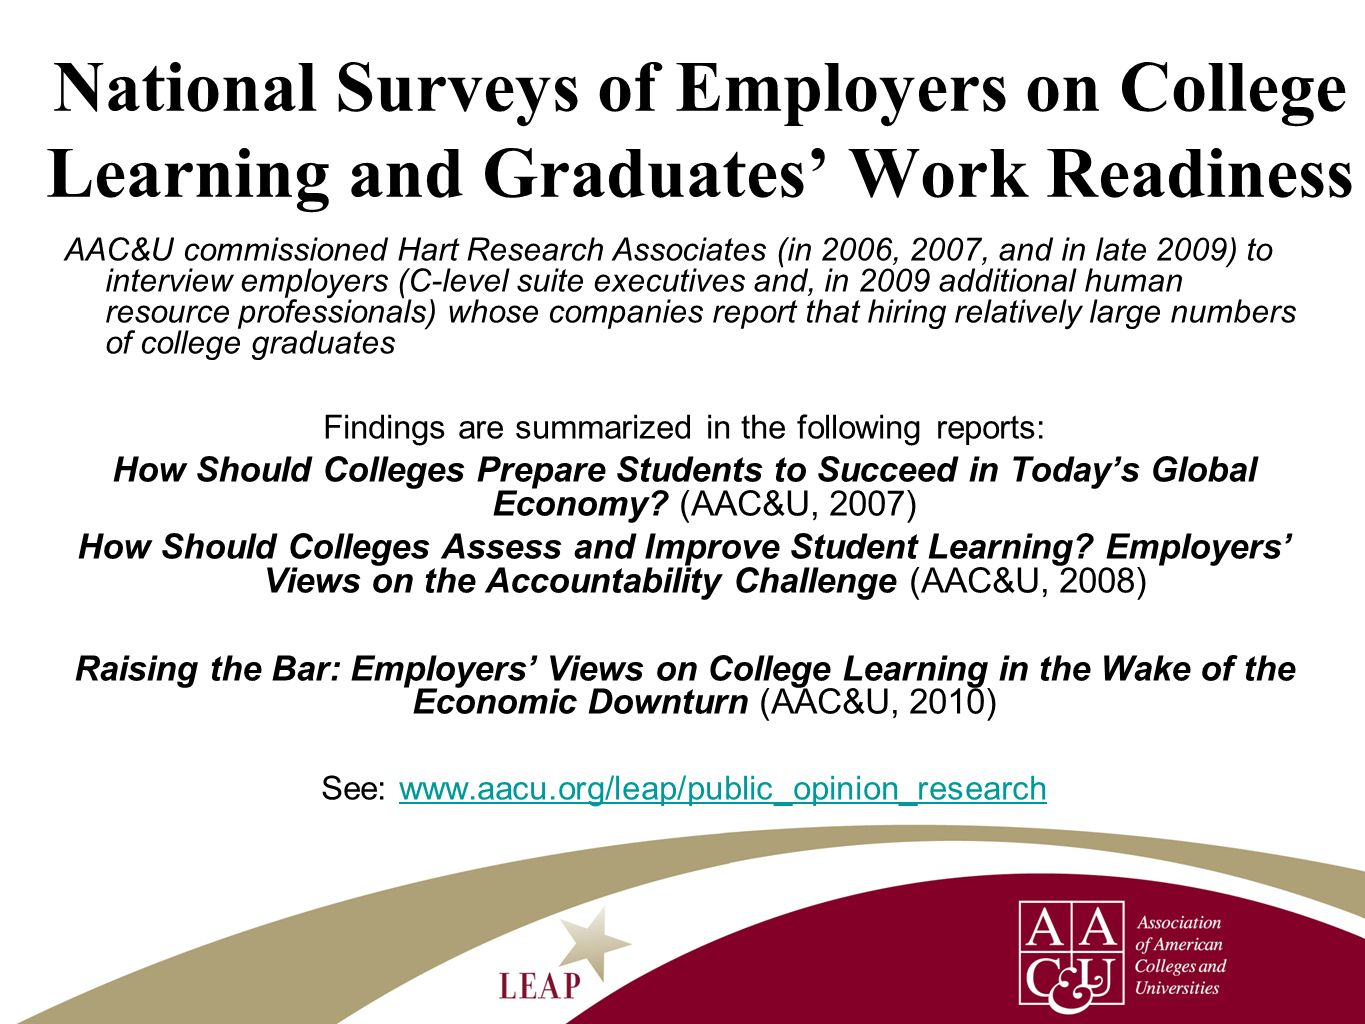 National Surveys of Employers on College Learning and Graduates' Work Readiness